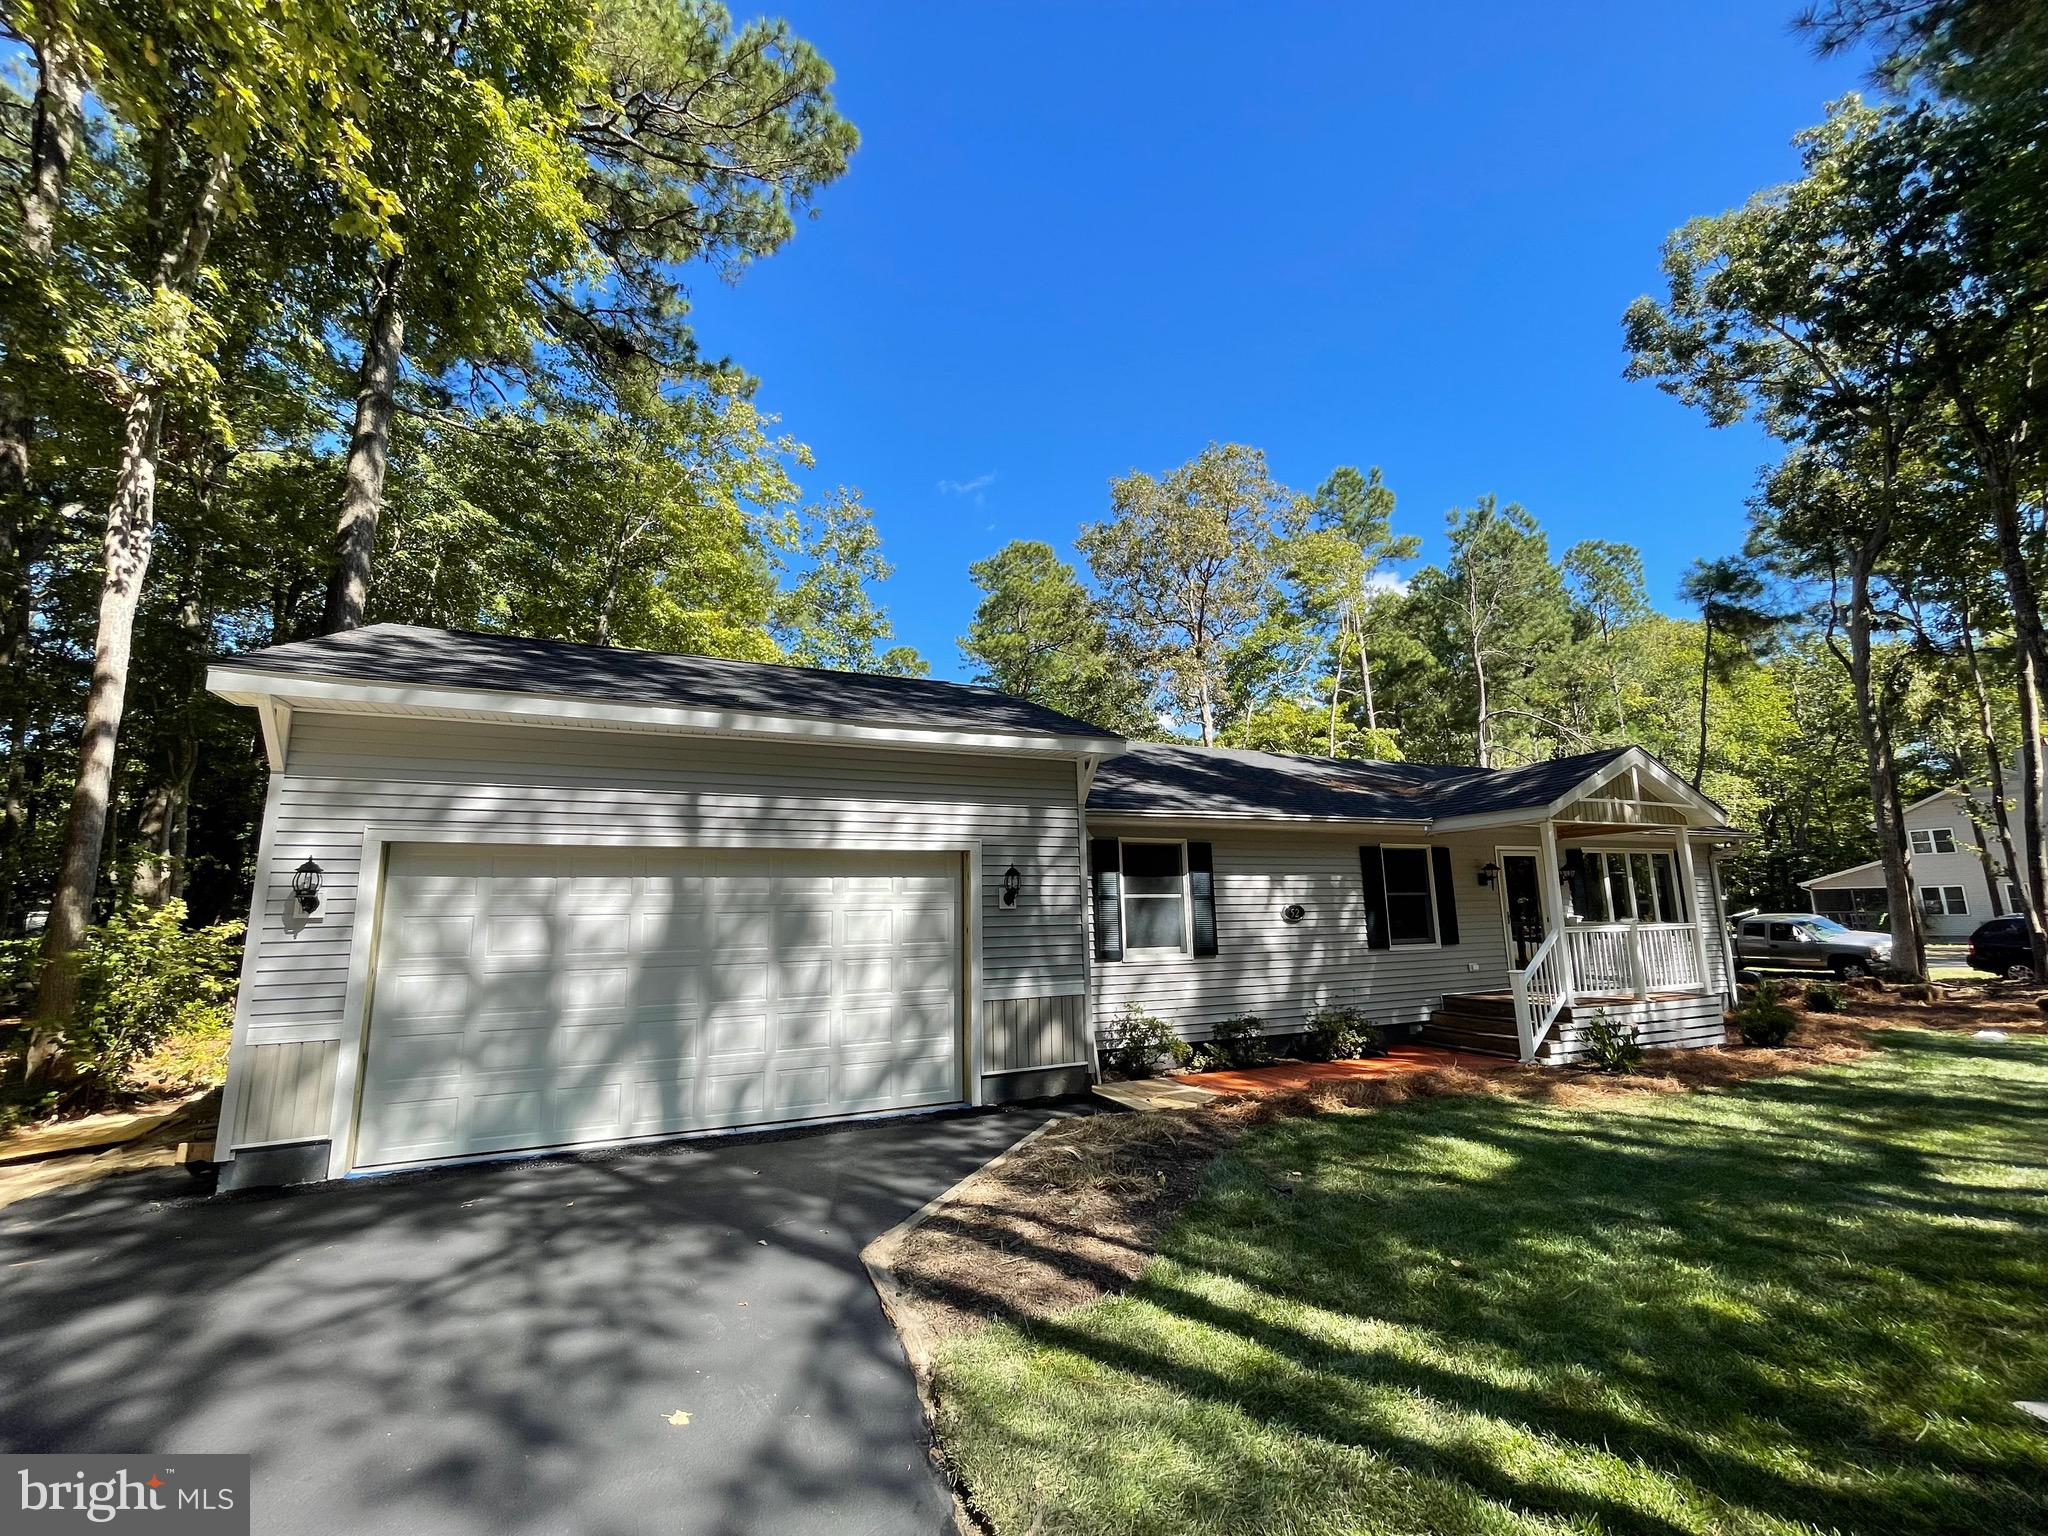 Open House Saturday, October 23rd. 10am to Noon. Spacious Rancher on large oversized corner lot in South Side of Ocean Pines. Home is in Excellent Condition and Turn Key for immediate occupancy. Very open floor plan, Lots of natural light, Fenced in rear yard with storage shed,  2 Car Garage, Side Yard offers room to add a Second Driveway off of Camelot. Many recent updates,Freshly painted,  New Kitchen Appliances, New Luxury Vinyl Plank Flooring, Granite Counter Tops, Updated Bathrooms, 2 Rear Decks, The Roof, Water Heater and HVAC were replaced a few years ago. This home could be yours. AMERICAN HOMES SHIELD ONE YEAR WARRANTY INCLUDED.